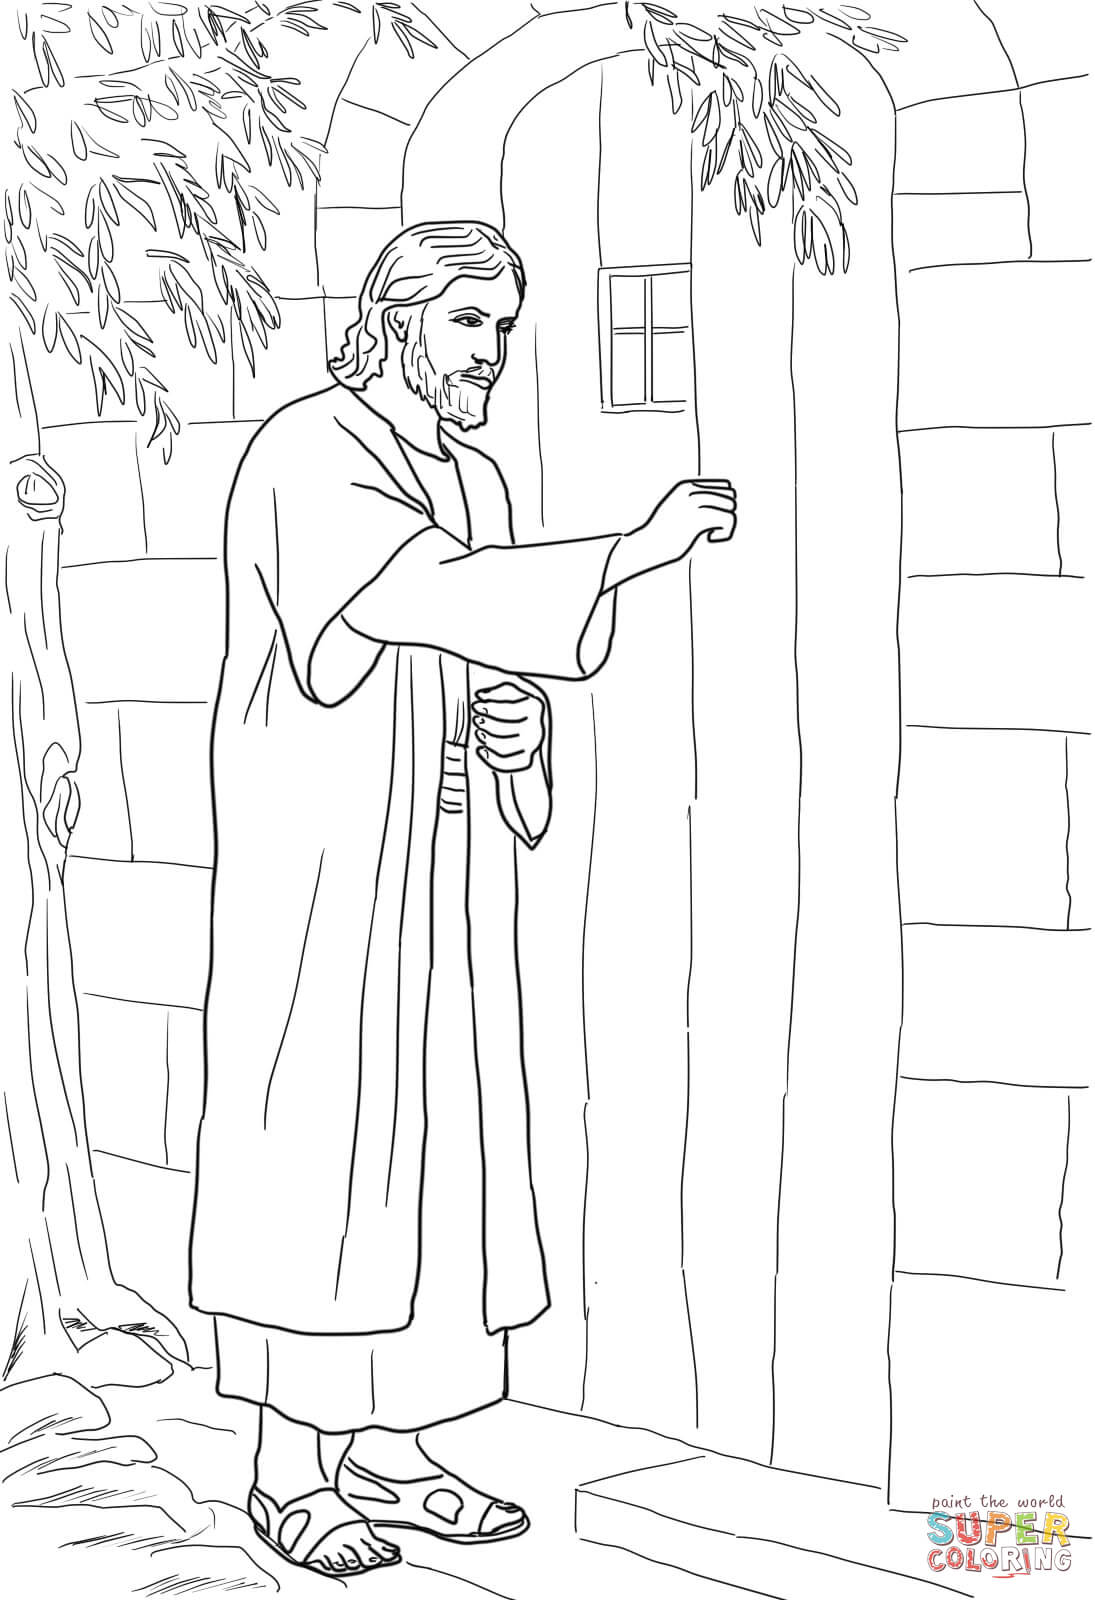 Jesus Knocking at the Door coloring page.